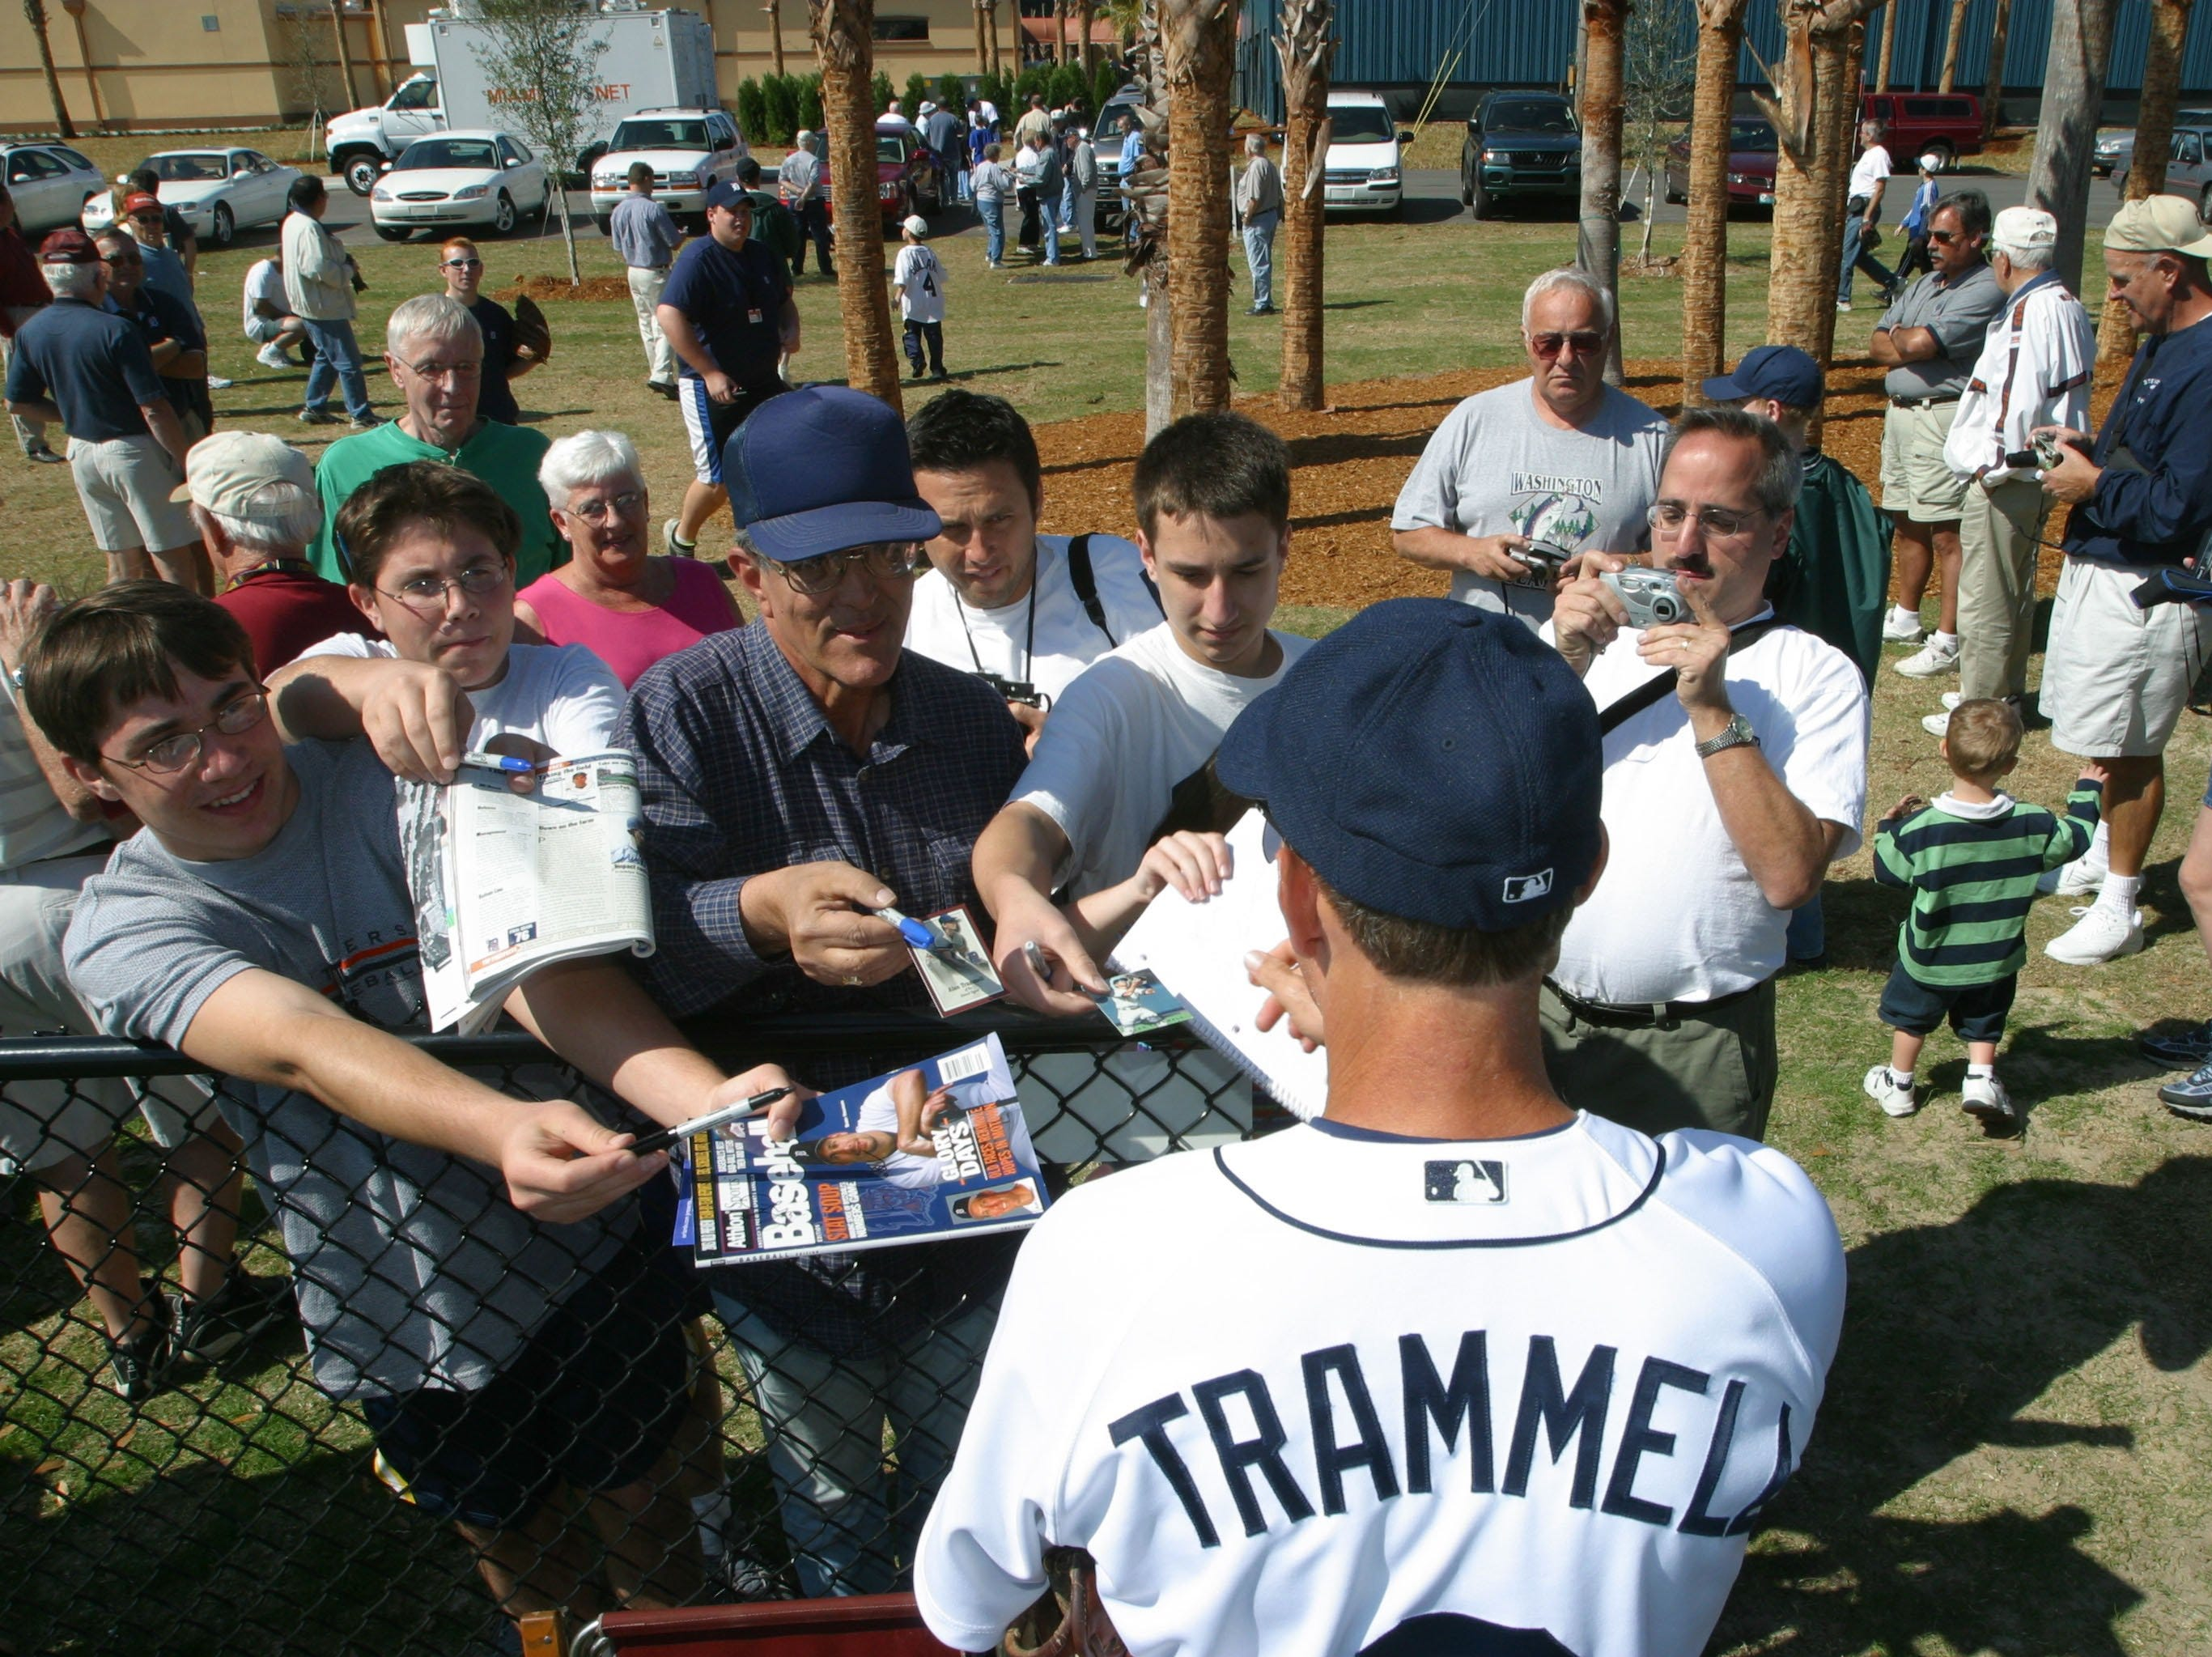 Detroit Tigers Manager Alan Trammell stops to sign  autographs before putting his team through their first full squad workout at spring training in Lakeland, FL on Tuesday, February 18, 2003.